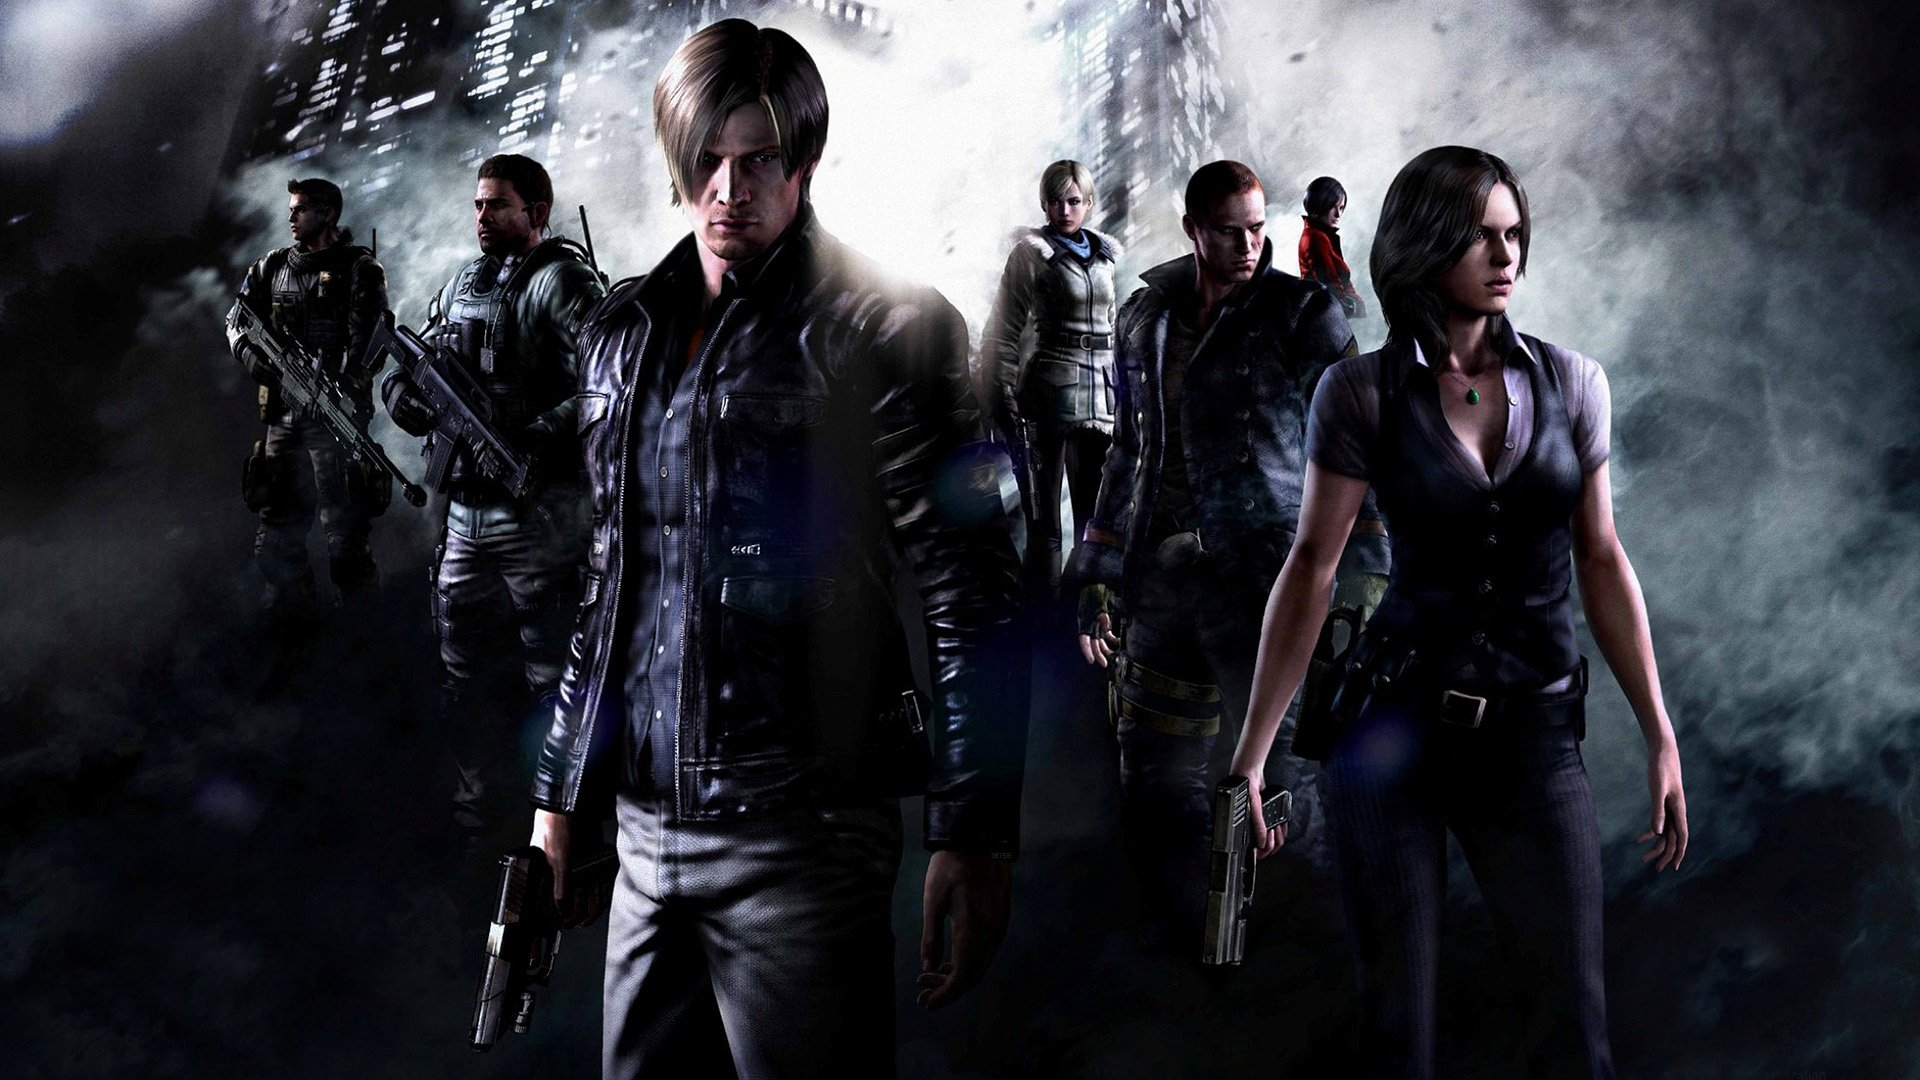 1920x1080 - Resident Evil HD Wallpapers 24